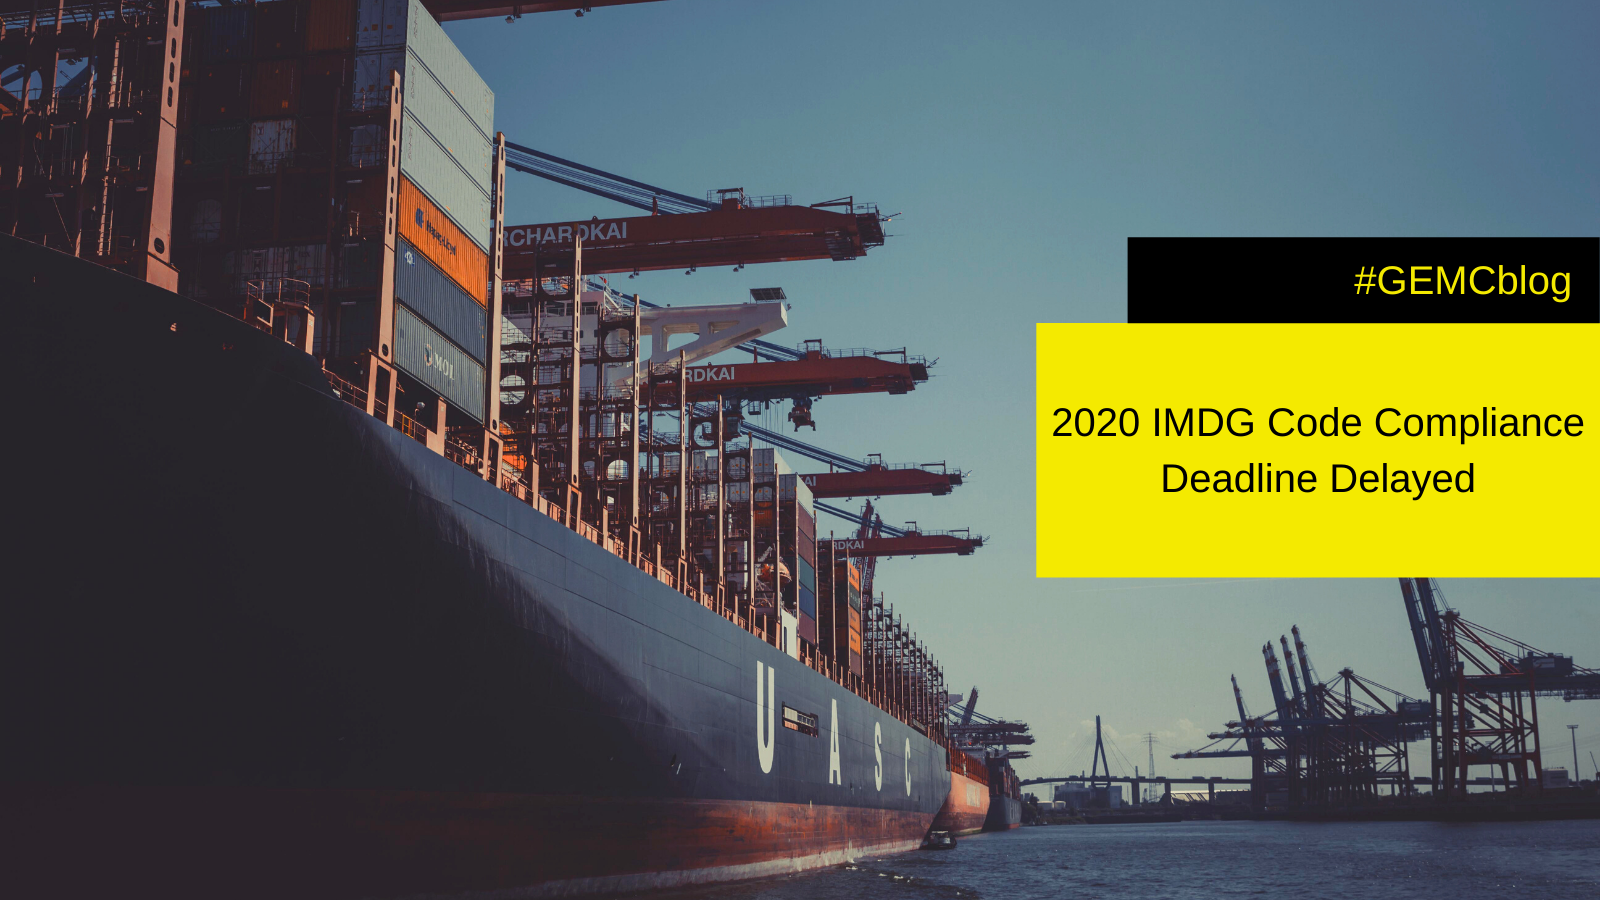 2020 IMDG Code Compliance Deadline Delayed